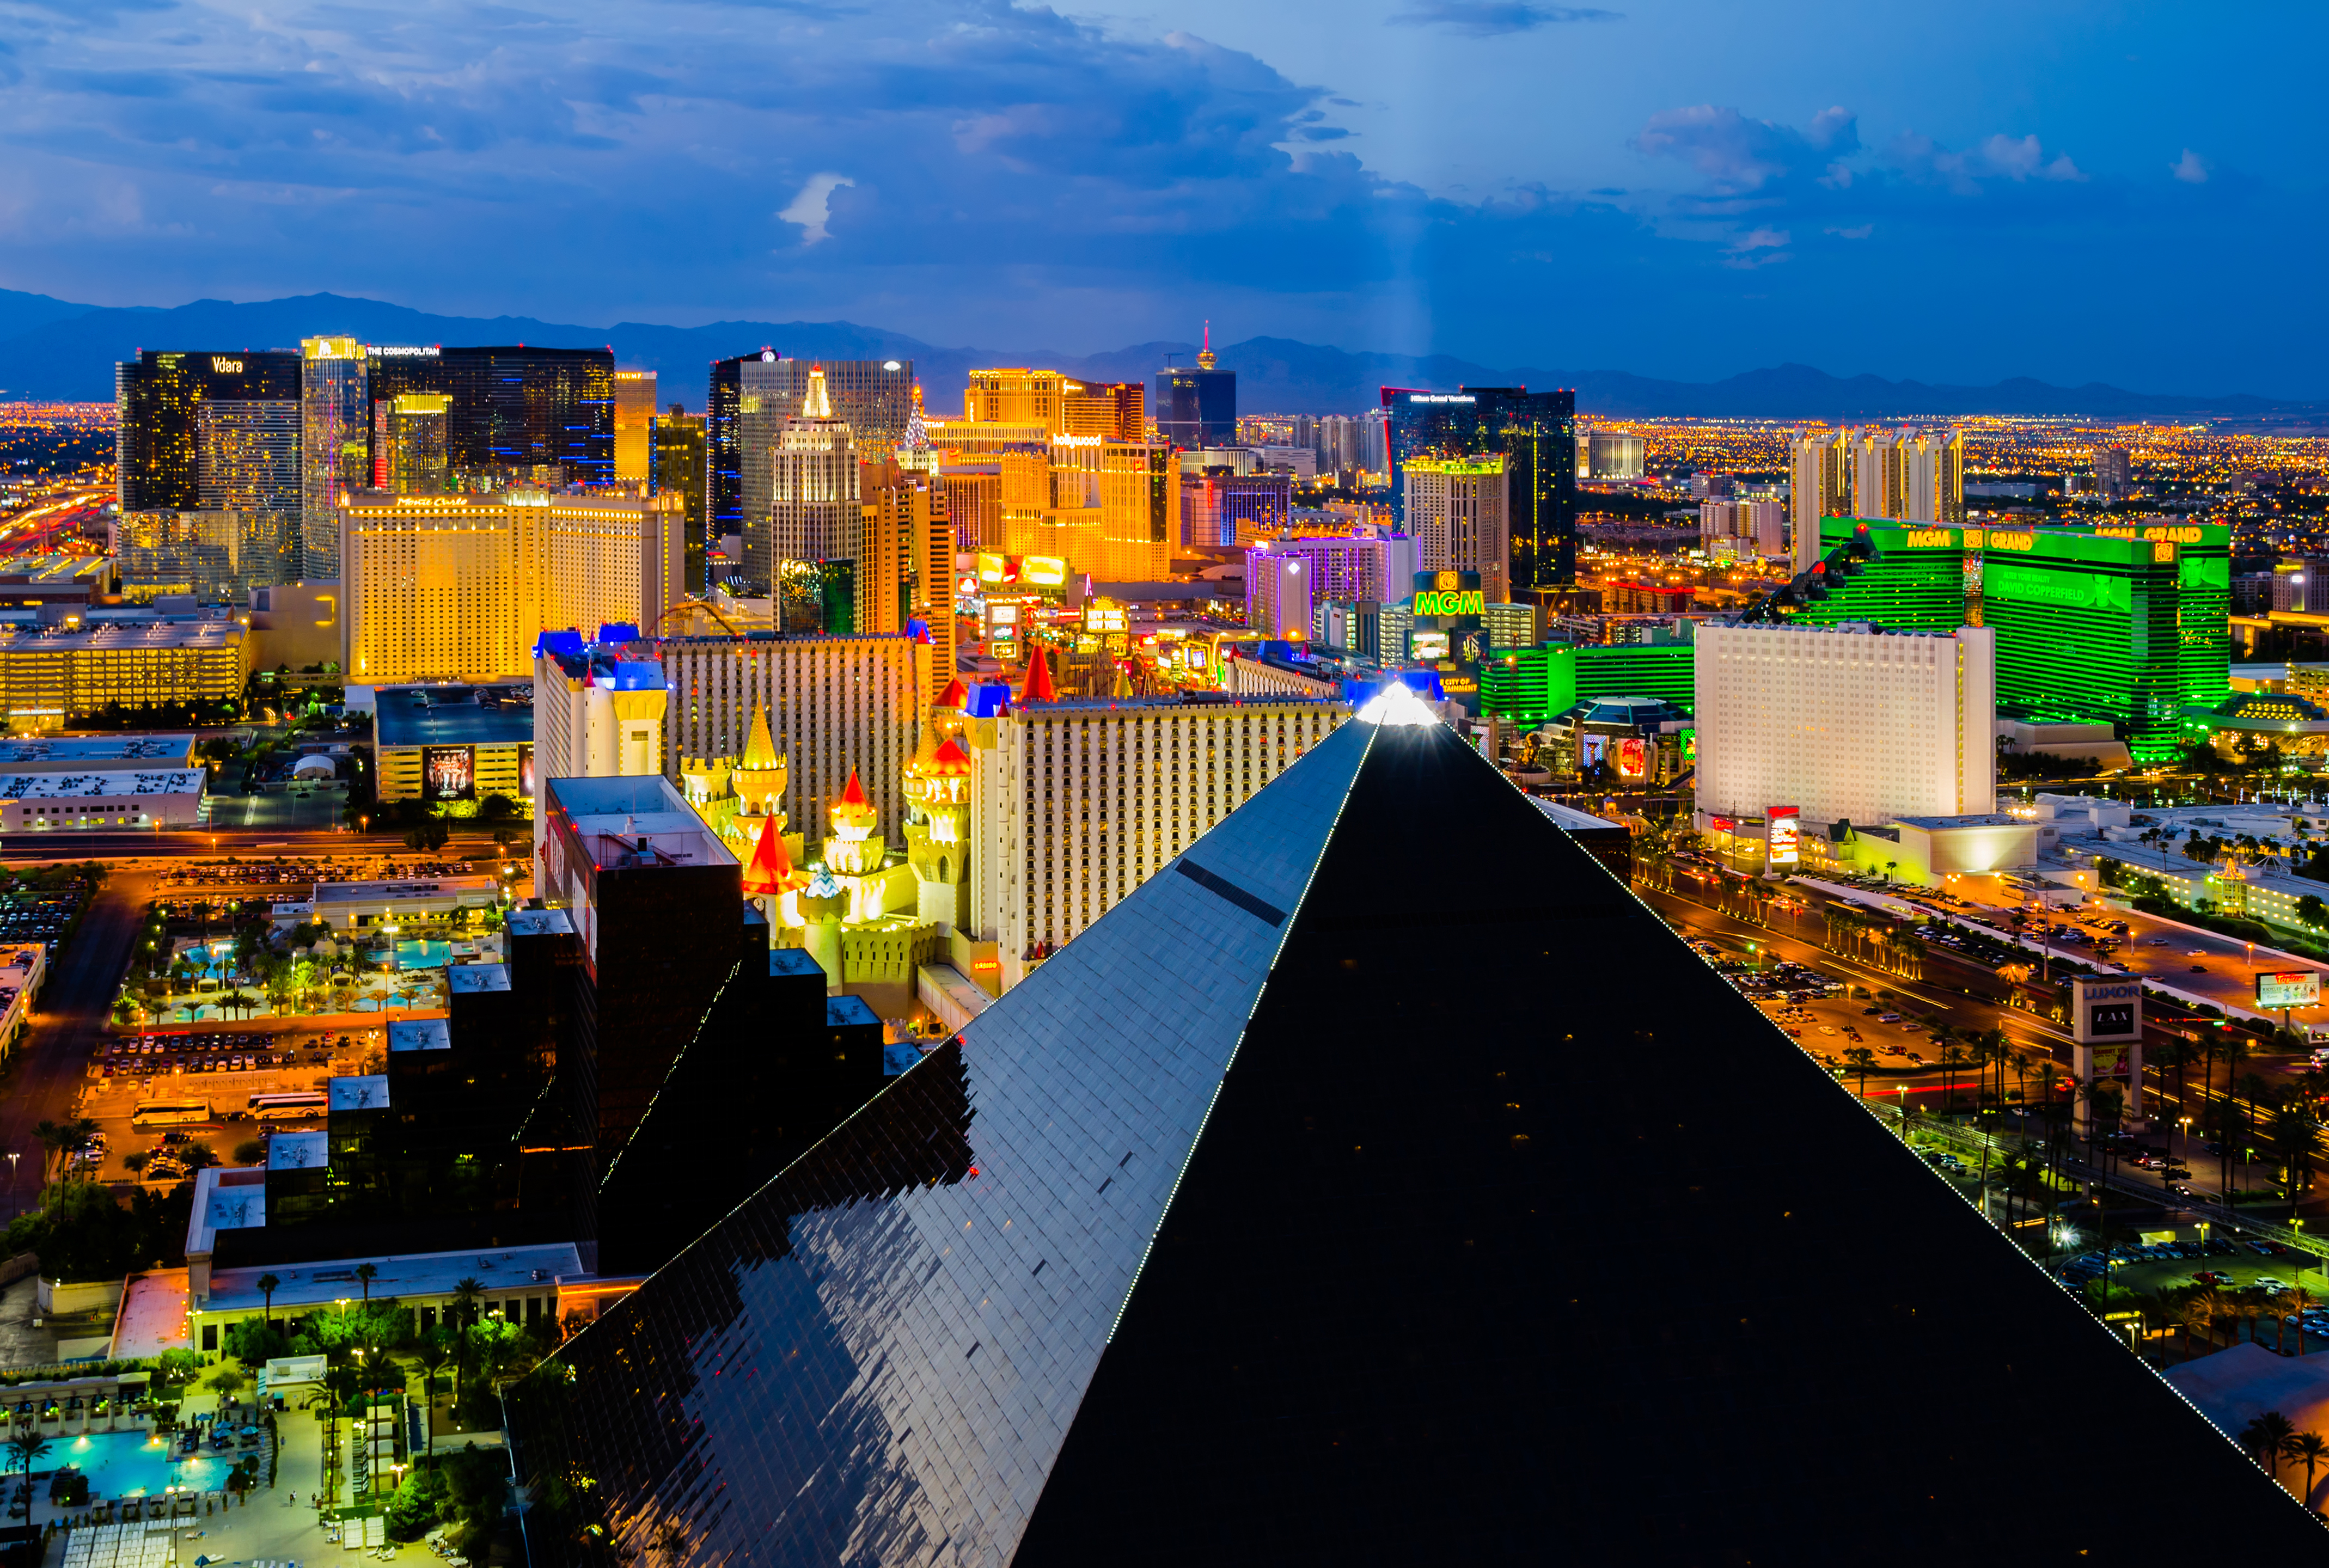 Las Vegas, USA - August 13, 2012: An aerial view of Las Vegas strip. The strip is approximately 4.2 mi (6.8 km) long and featured with world class hotels and casinos.